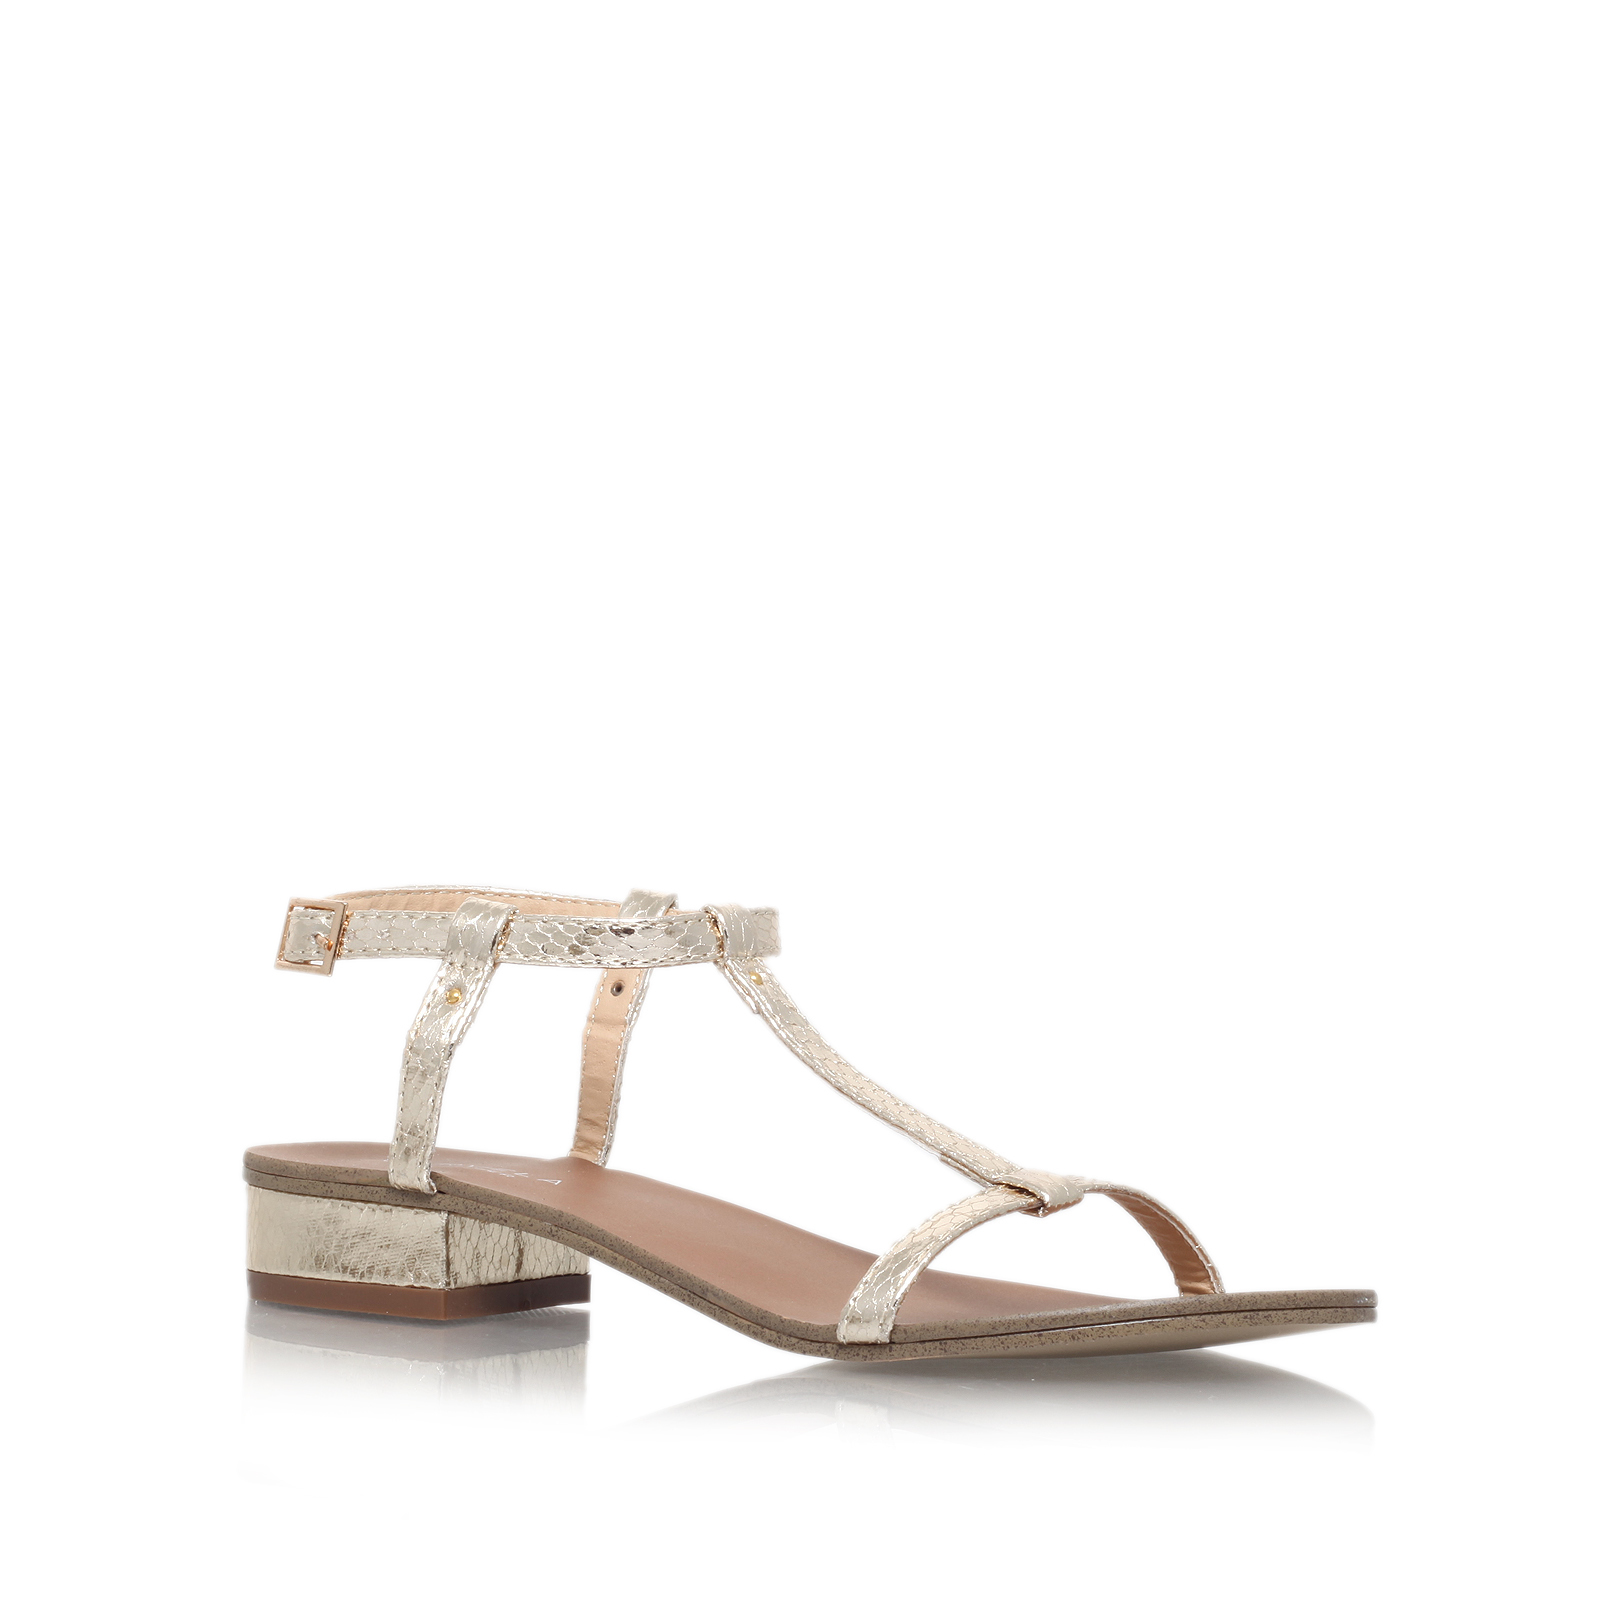 56c659d6657 BOUNTY Carvela Bounty Gold Sandals by CARVELA